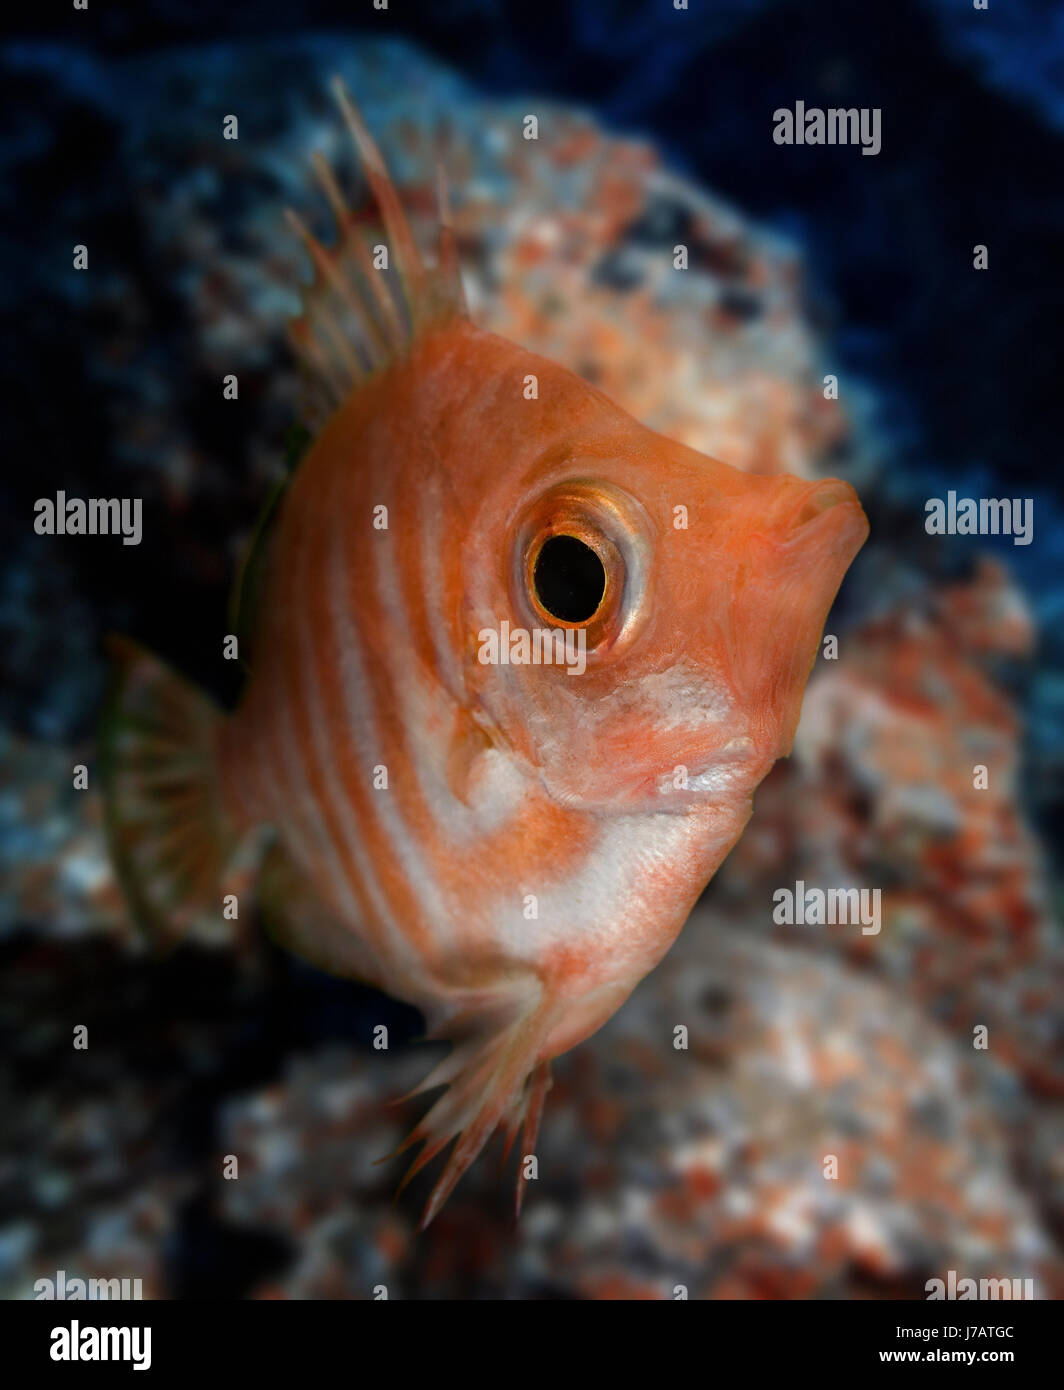 Boarfish, Capros aper. Frontal view. Portugal. Stock Photo